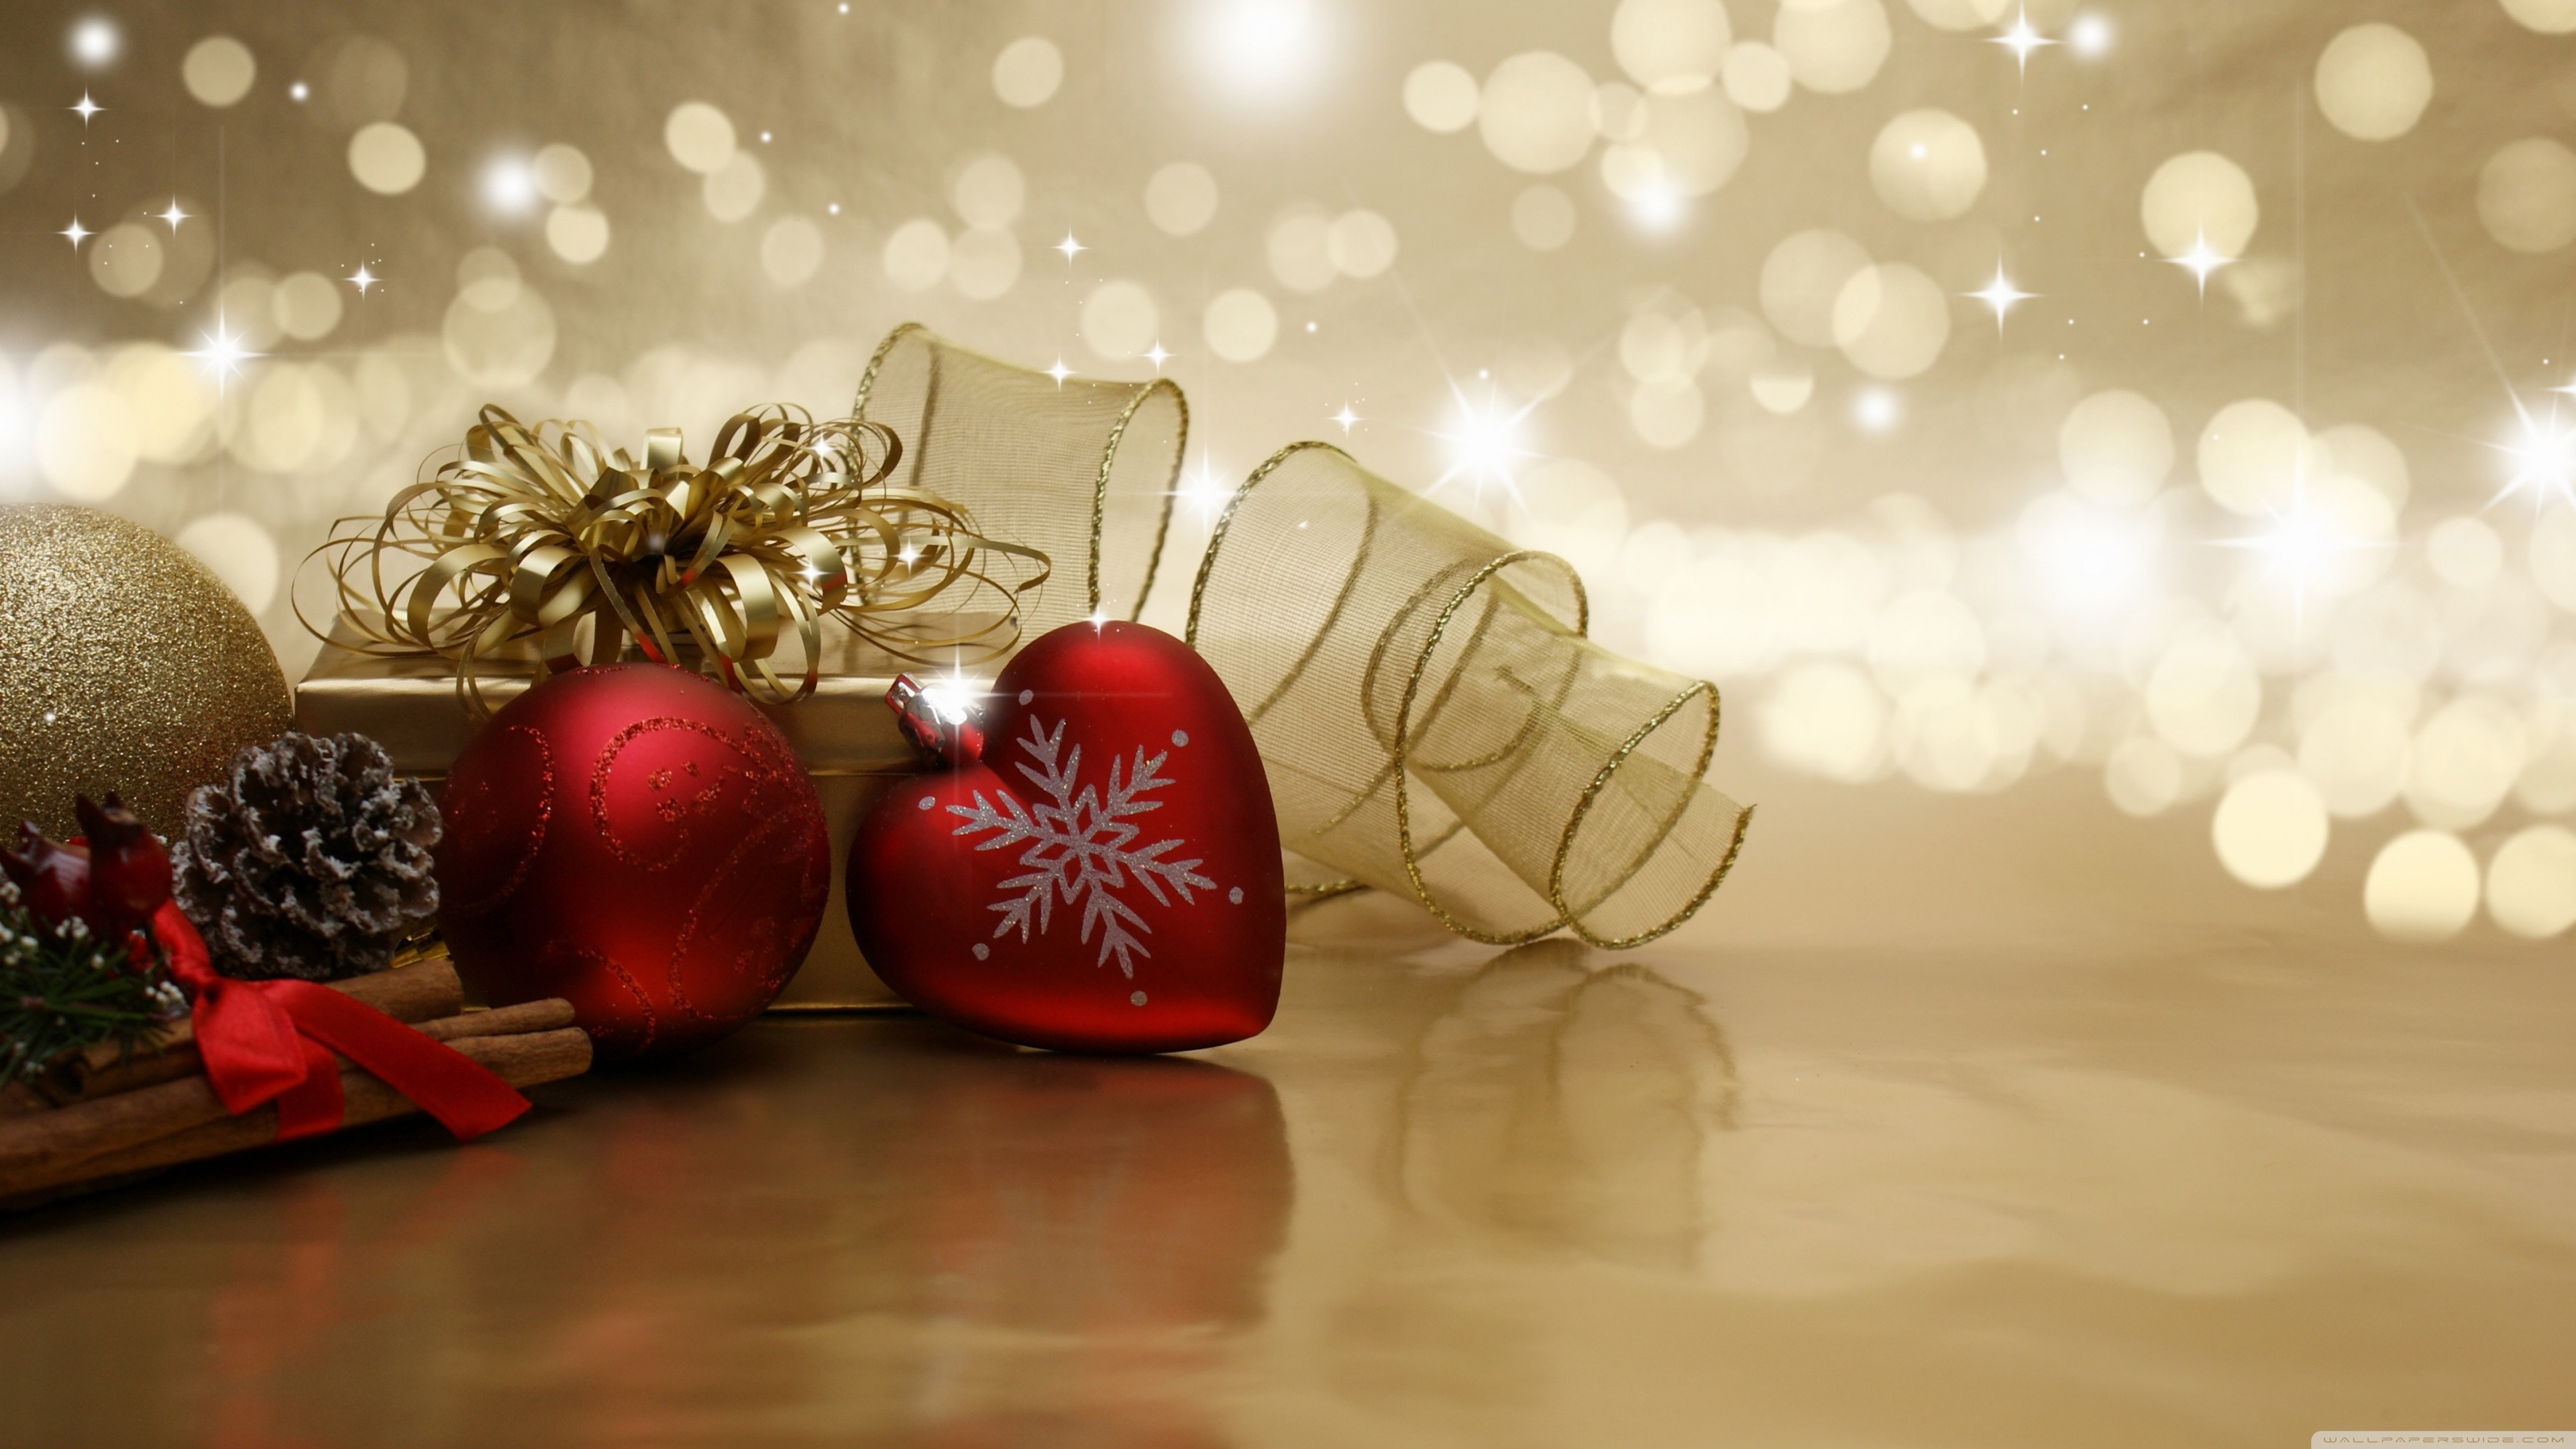 ultra hd christmas wallpapers 39 images